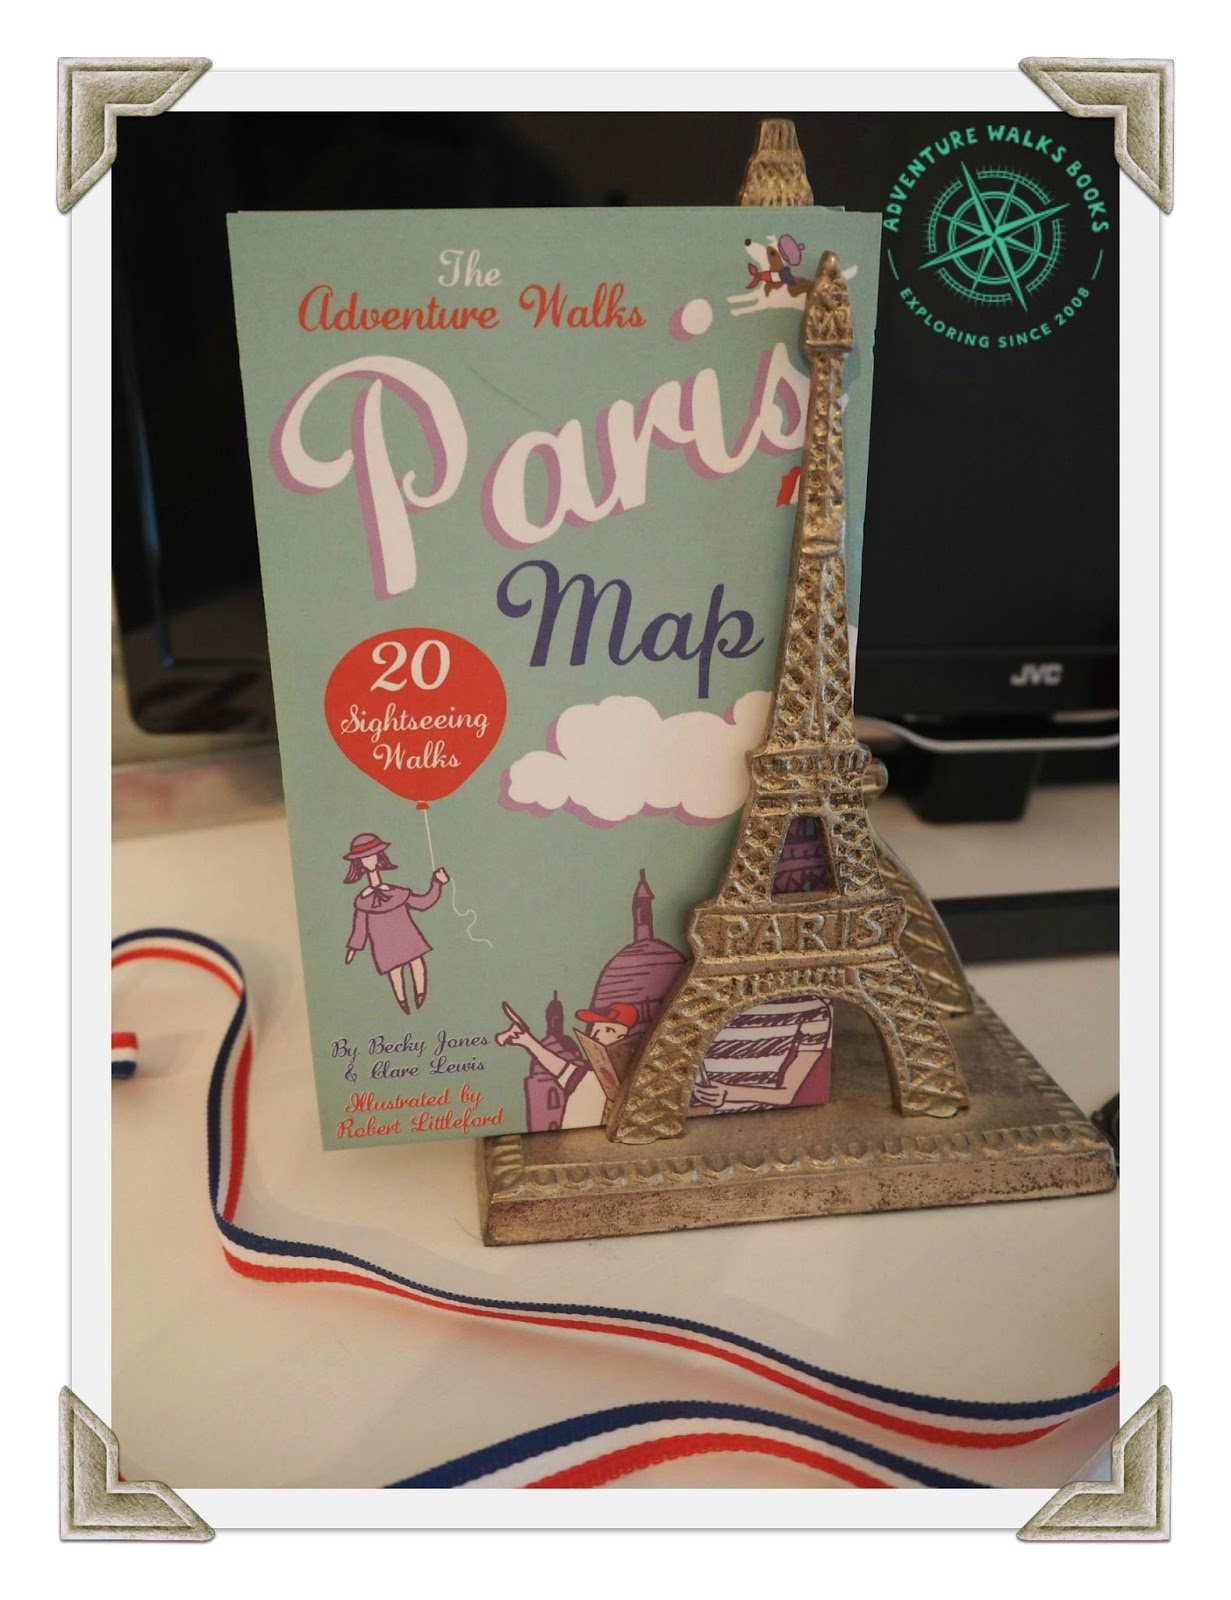 mamasVIB V. I. BUSY BEES: Paris Fashion Week kids fashion special & Adventure Walks giveaway, fashion week, fashion week special, partis fashion week, paw, kids fashion, sightseeing, things to do in paris, style, adventure maps, adventure books, adventure walks books, guidebooks for kids, maps, places to see in [pasris with children, stripes, macs, boden, marsk and spender, alex and alexa, kids style, bloger, guidebook, paris, paris clothes, kids, children's fashion, fashion week busy bees, paris guide